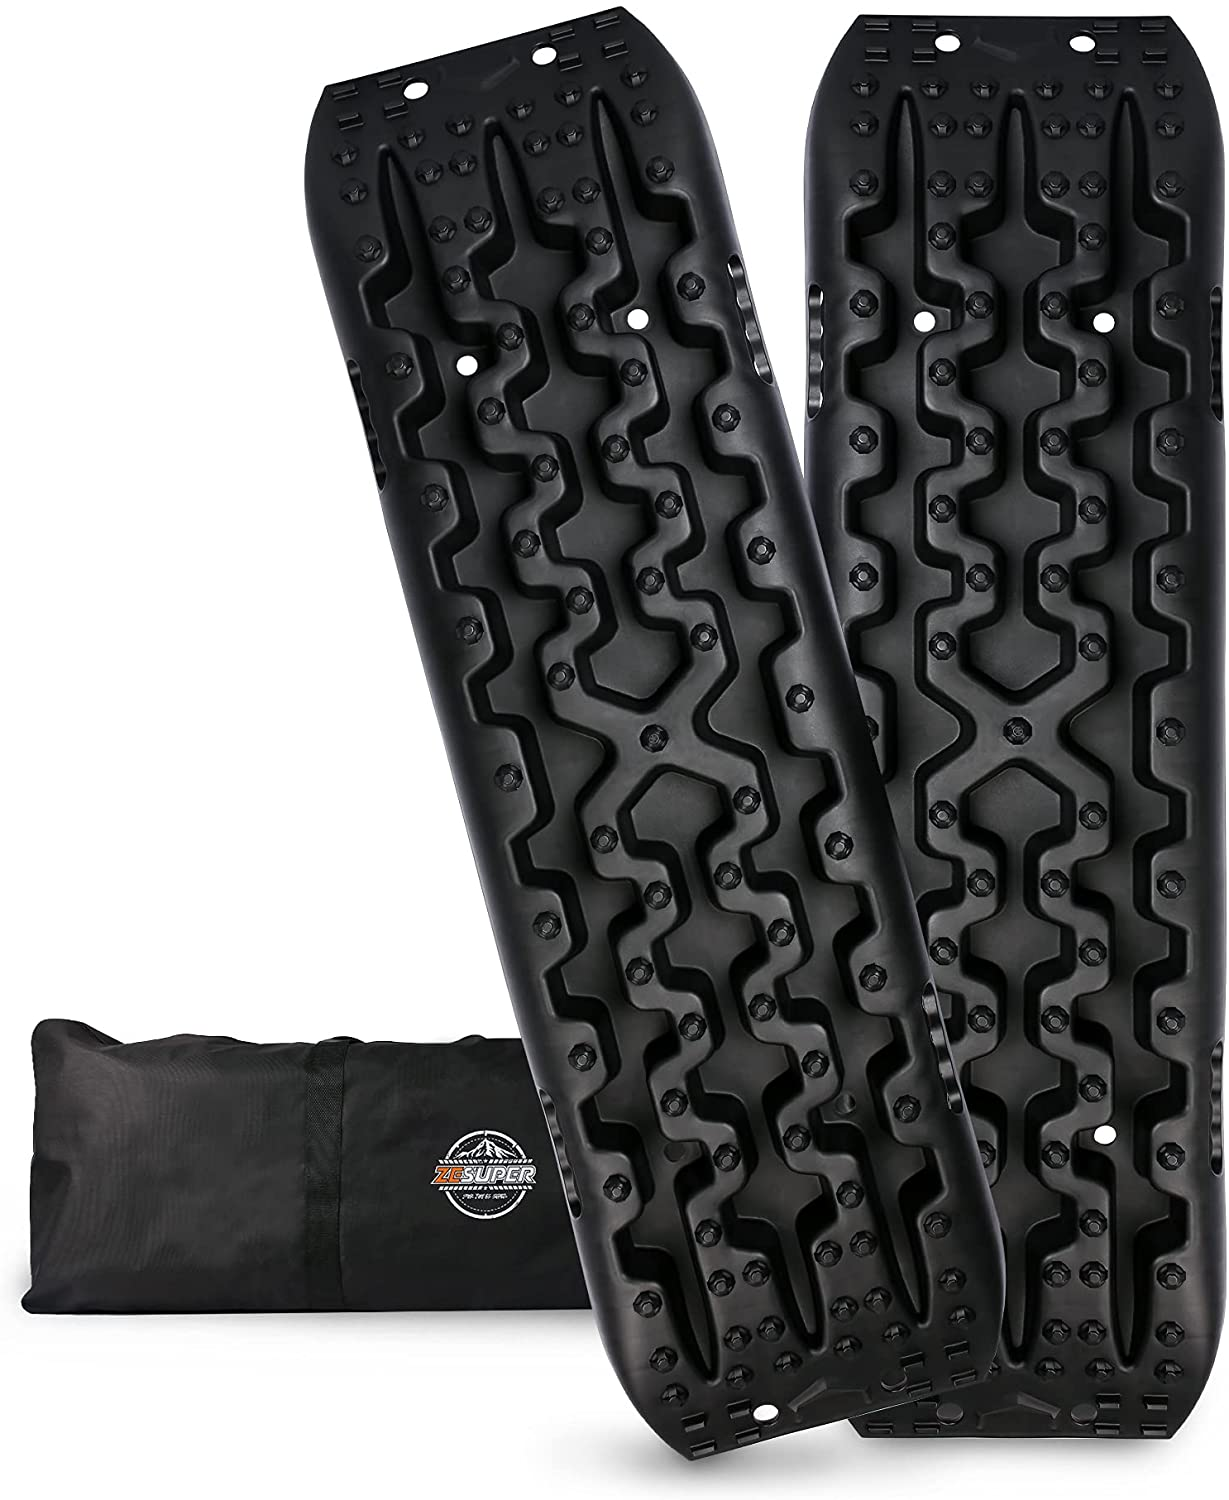 Zesuper Recovery Traction Tracks; best car accessories